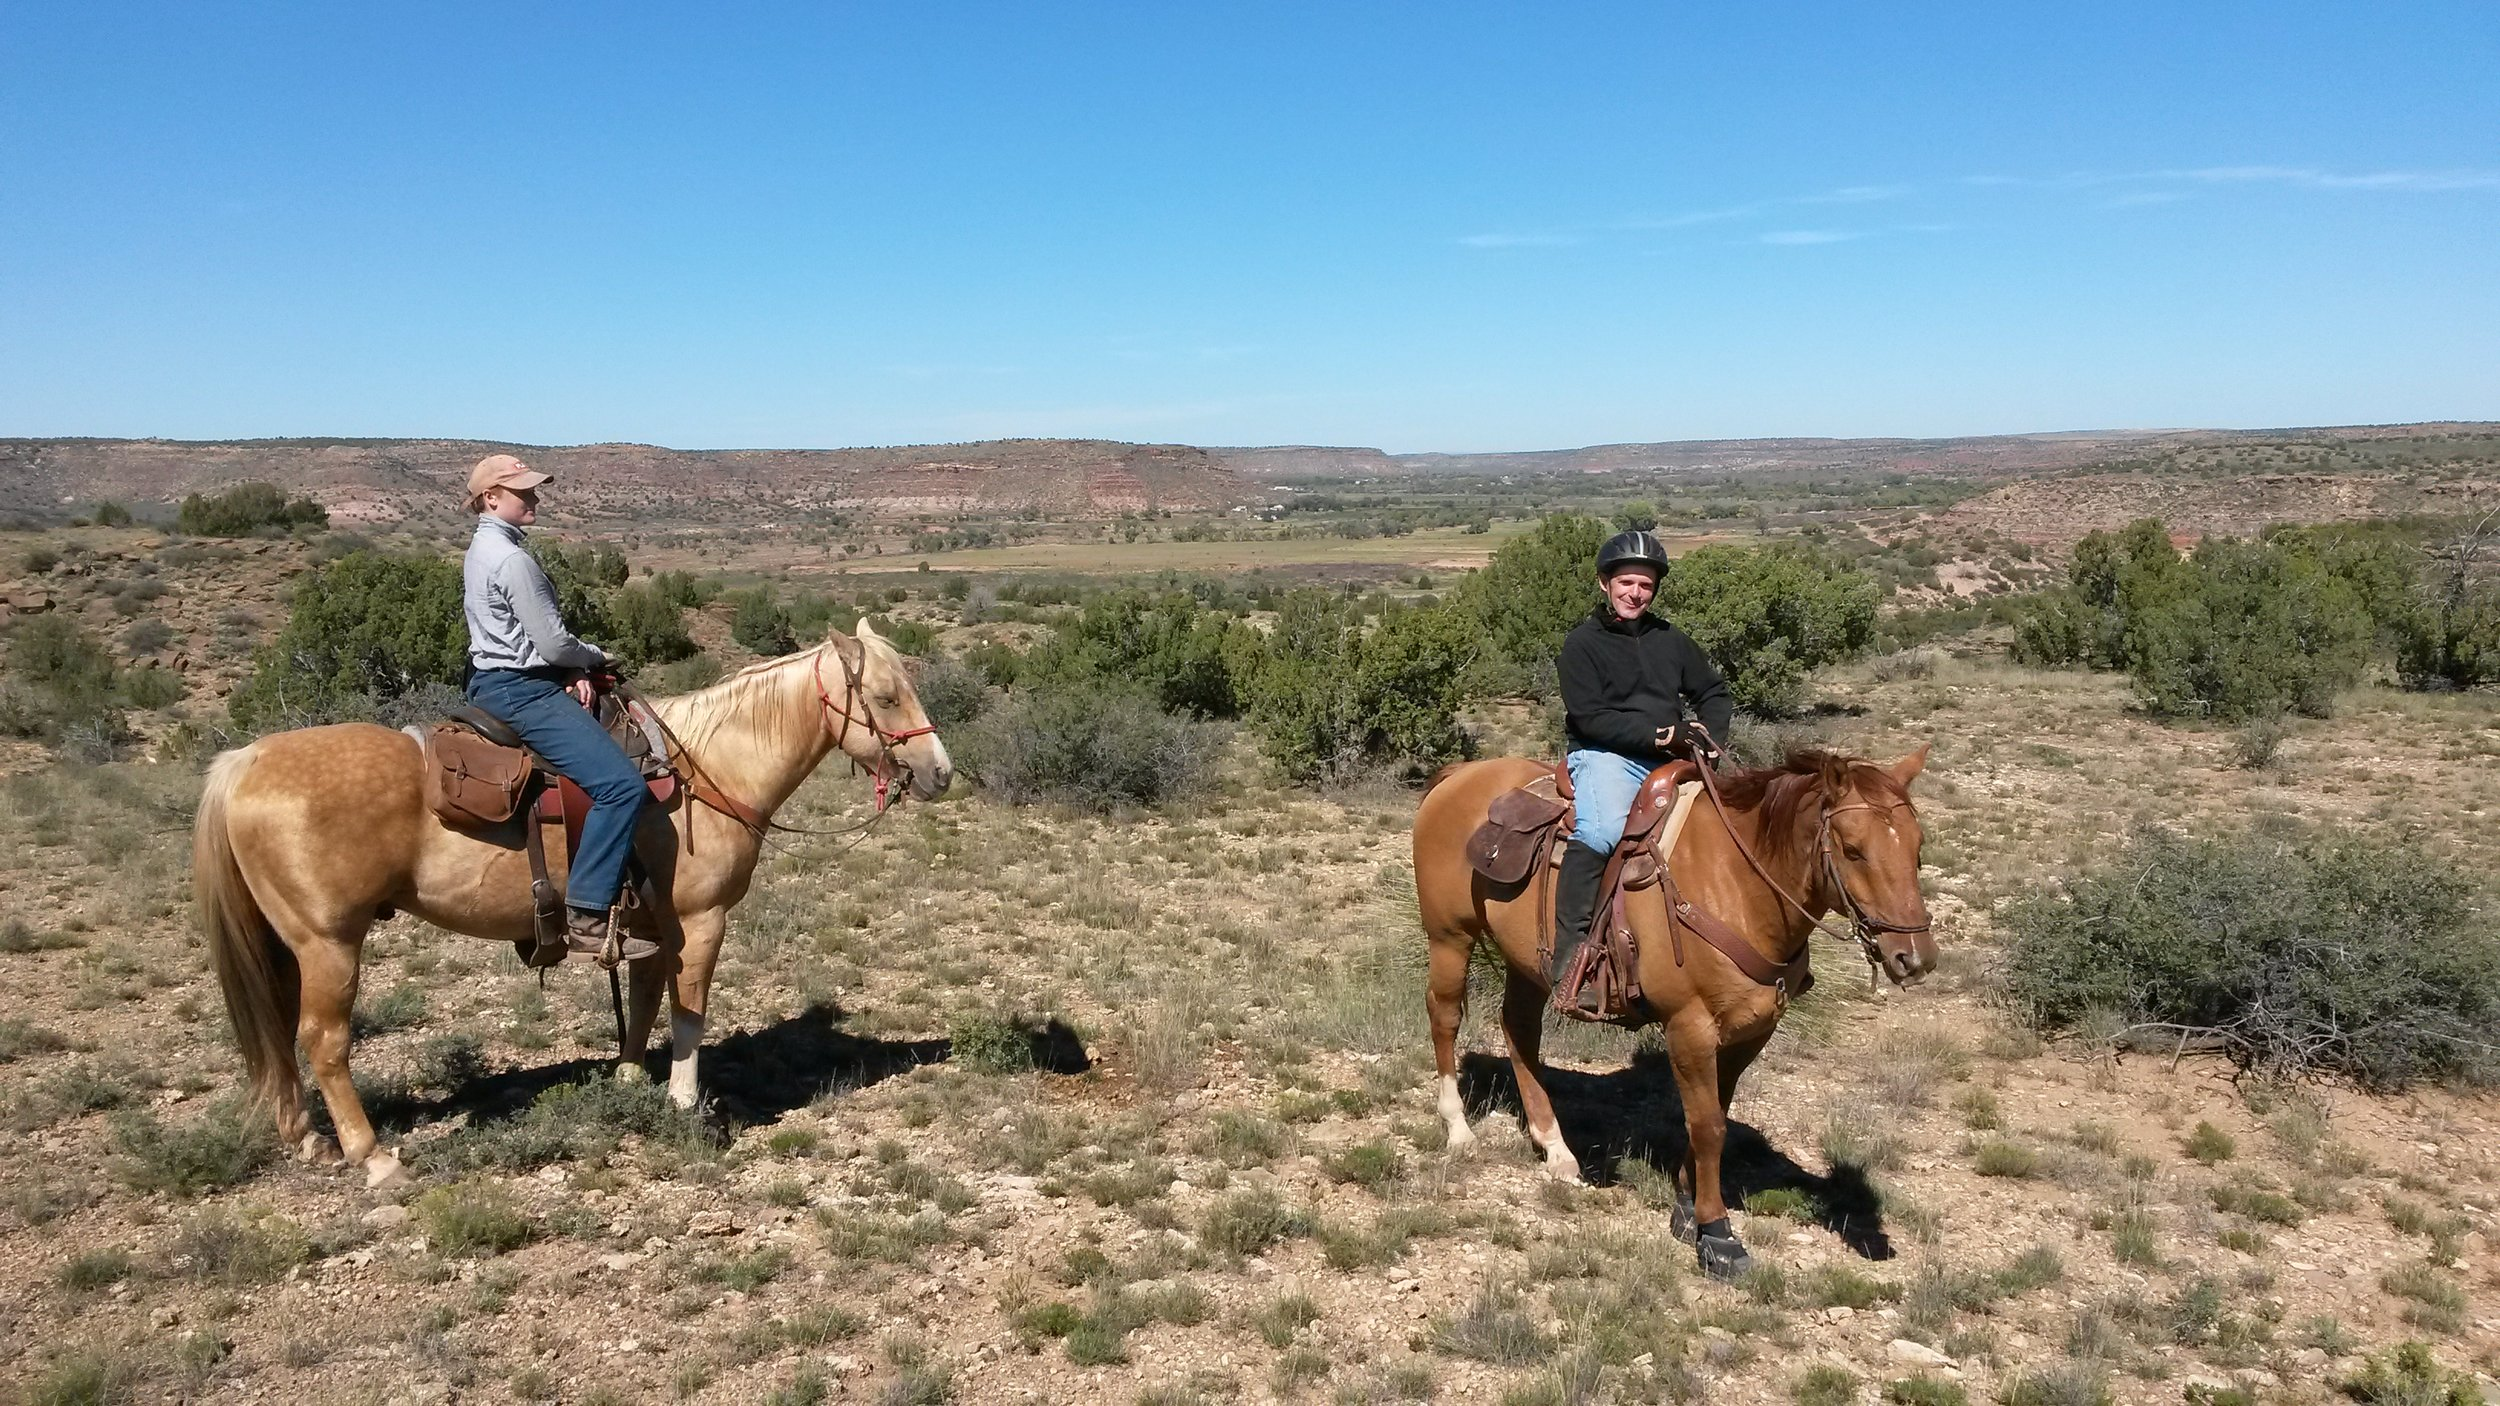 A trail ride in nice weather (left to right: Melanie on Johnny and Leo on Whiskey) with the Pecos Valley in the background.  Ein Trailritt in herrlichem Wetter (links nach rechts:Melanie auf Johnny und Leo auf Whiskey) mit dem Pecos Valley im Hintergrund.